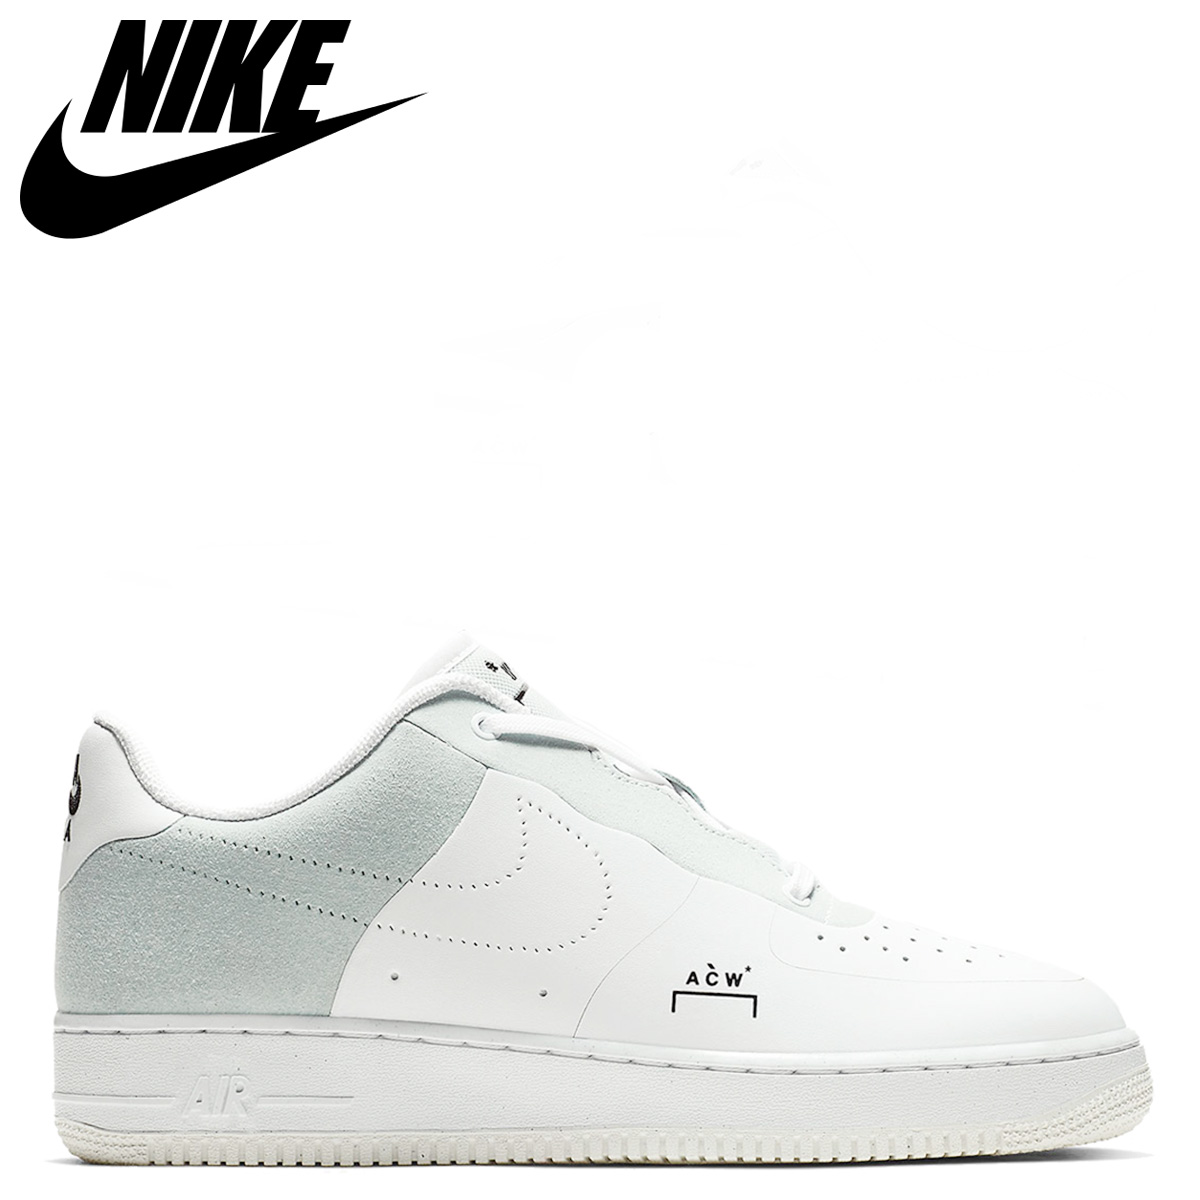 NIKE Nike air force 1 sneakers men AIR FORCE 1 07 A COLD WALL collaboration white white BQ6924 100